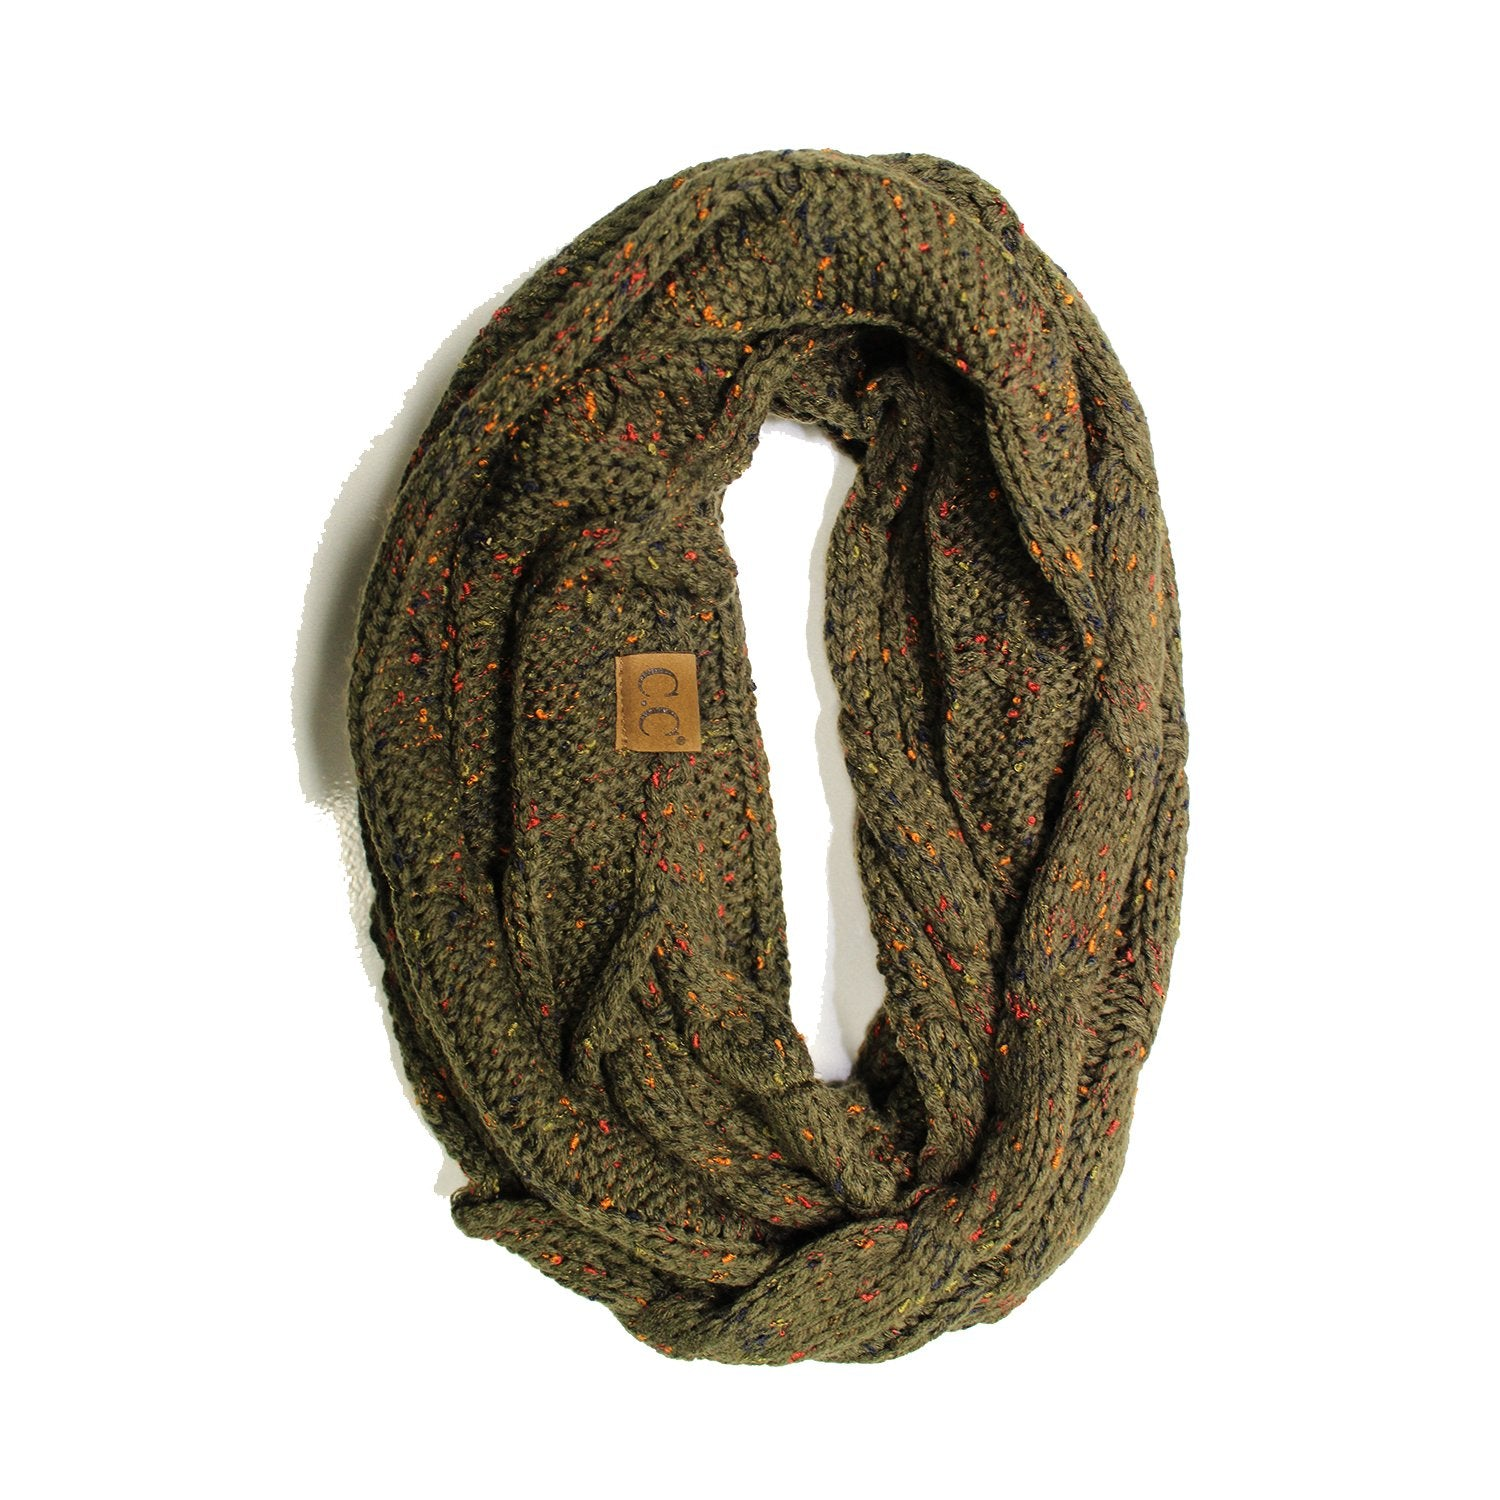 SF-33-New Olive Speckled Infinity Scarf